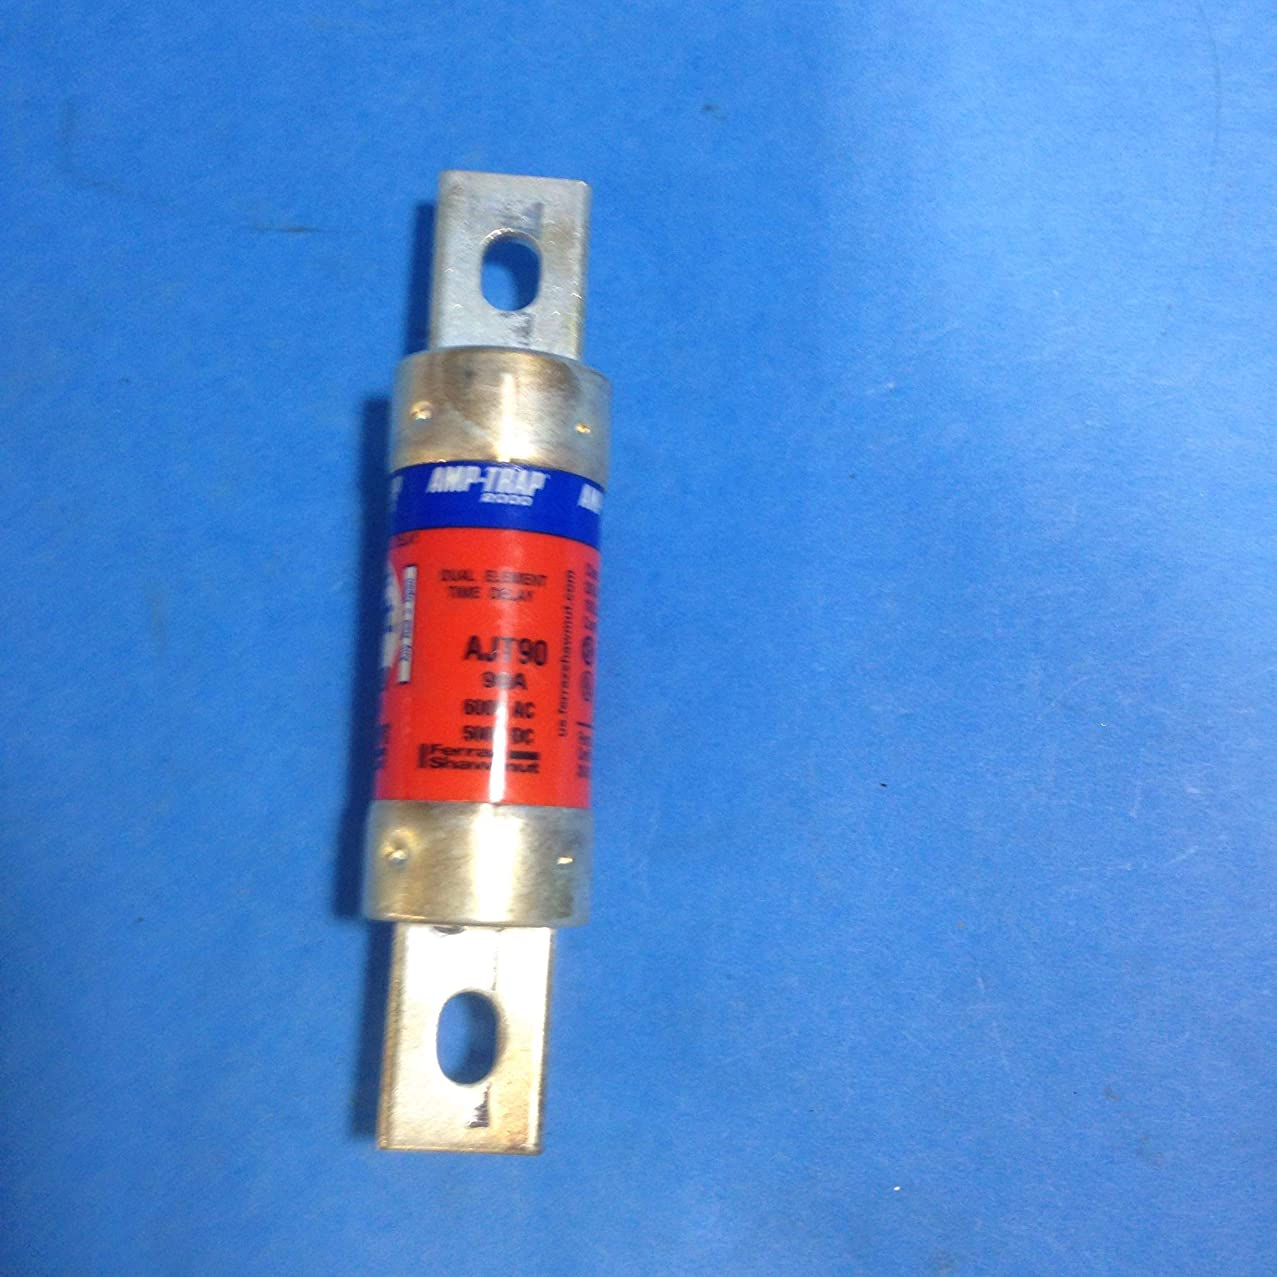 Ferraz Shawmut Amp-Trap 2000, SmartSpot AJT90 Current Limiting Time Delay Fuse, 90 A, 600 VAC/500 VDC, Class J